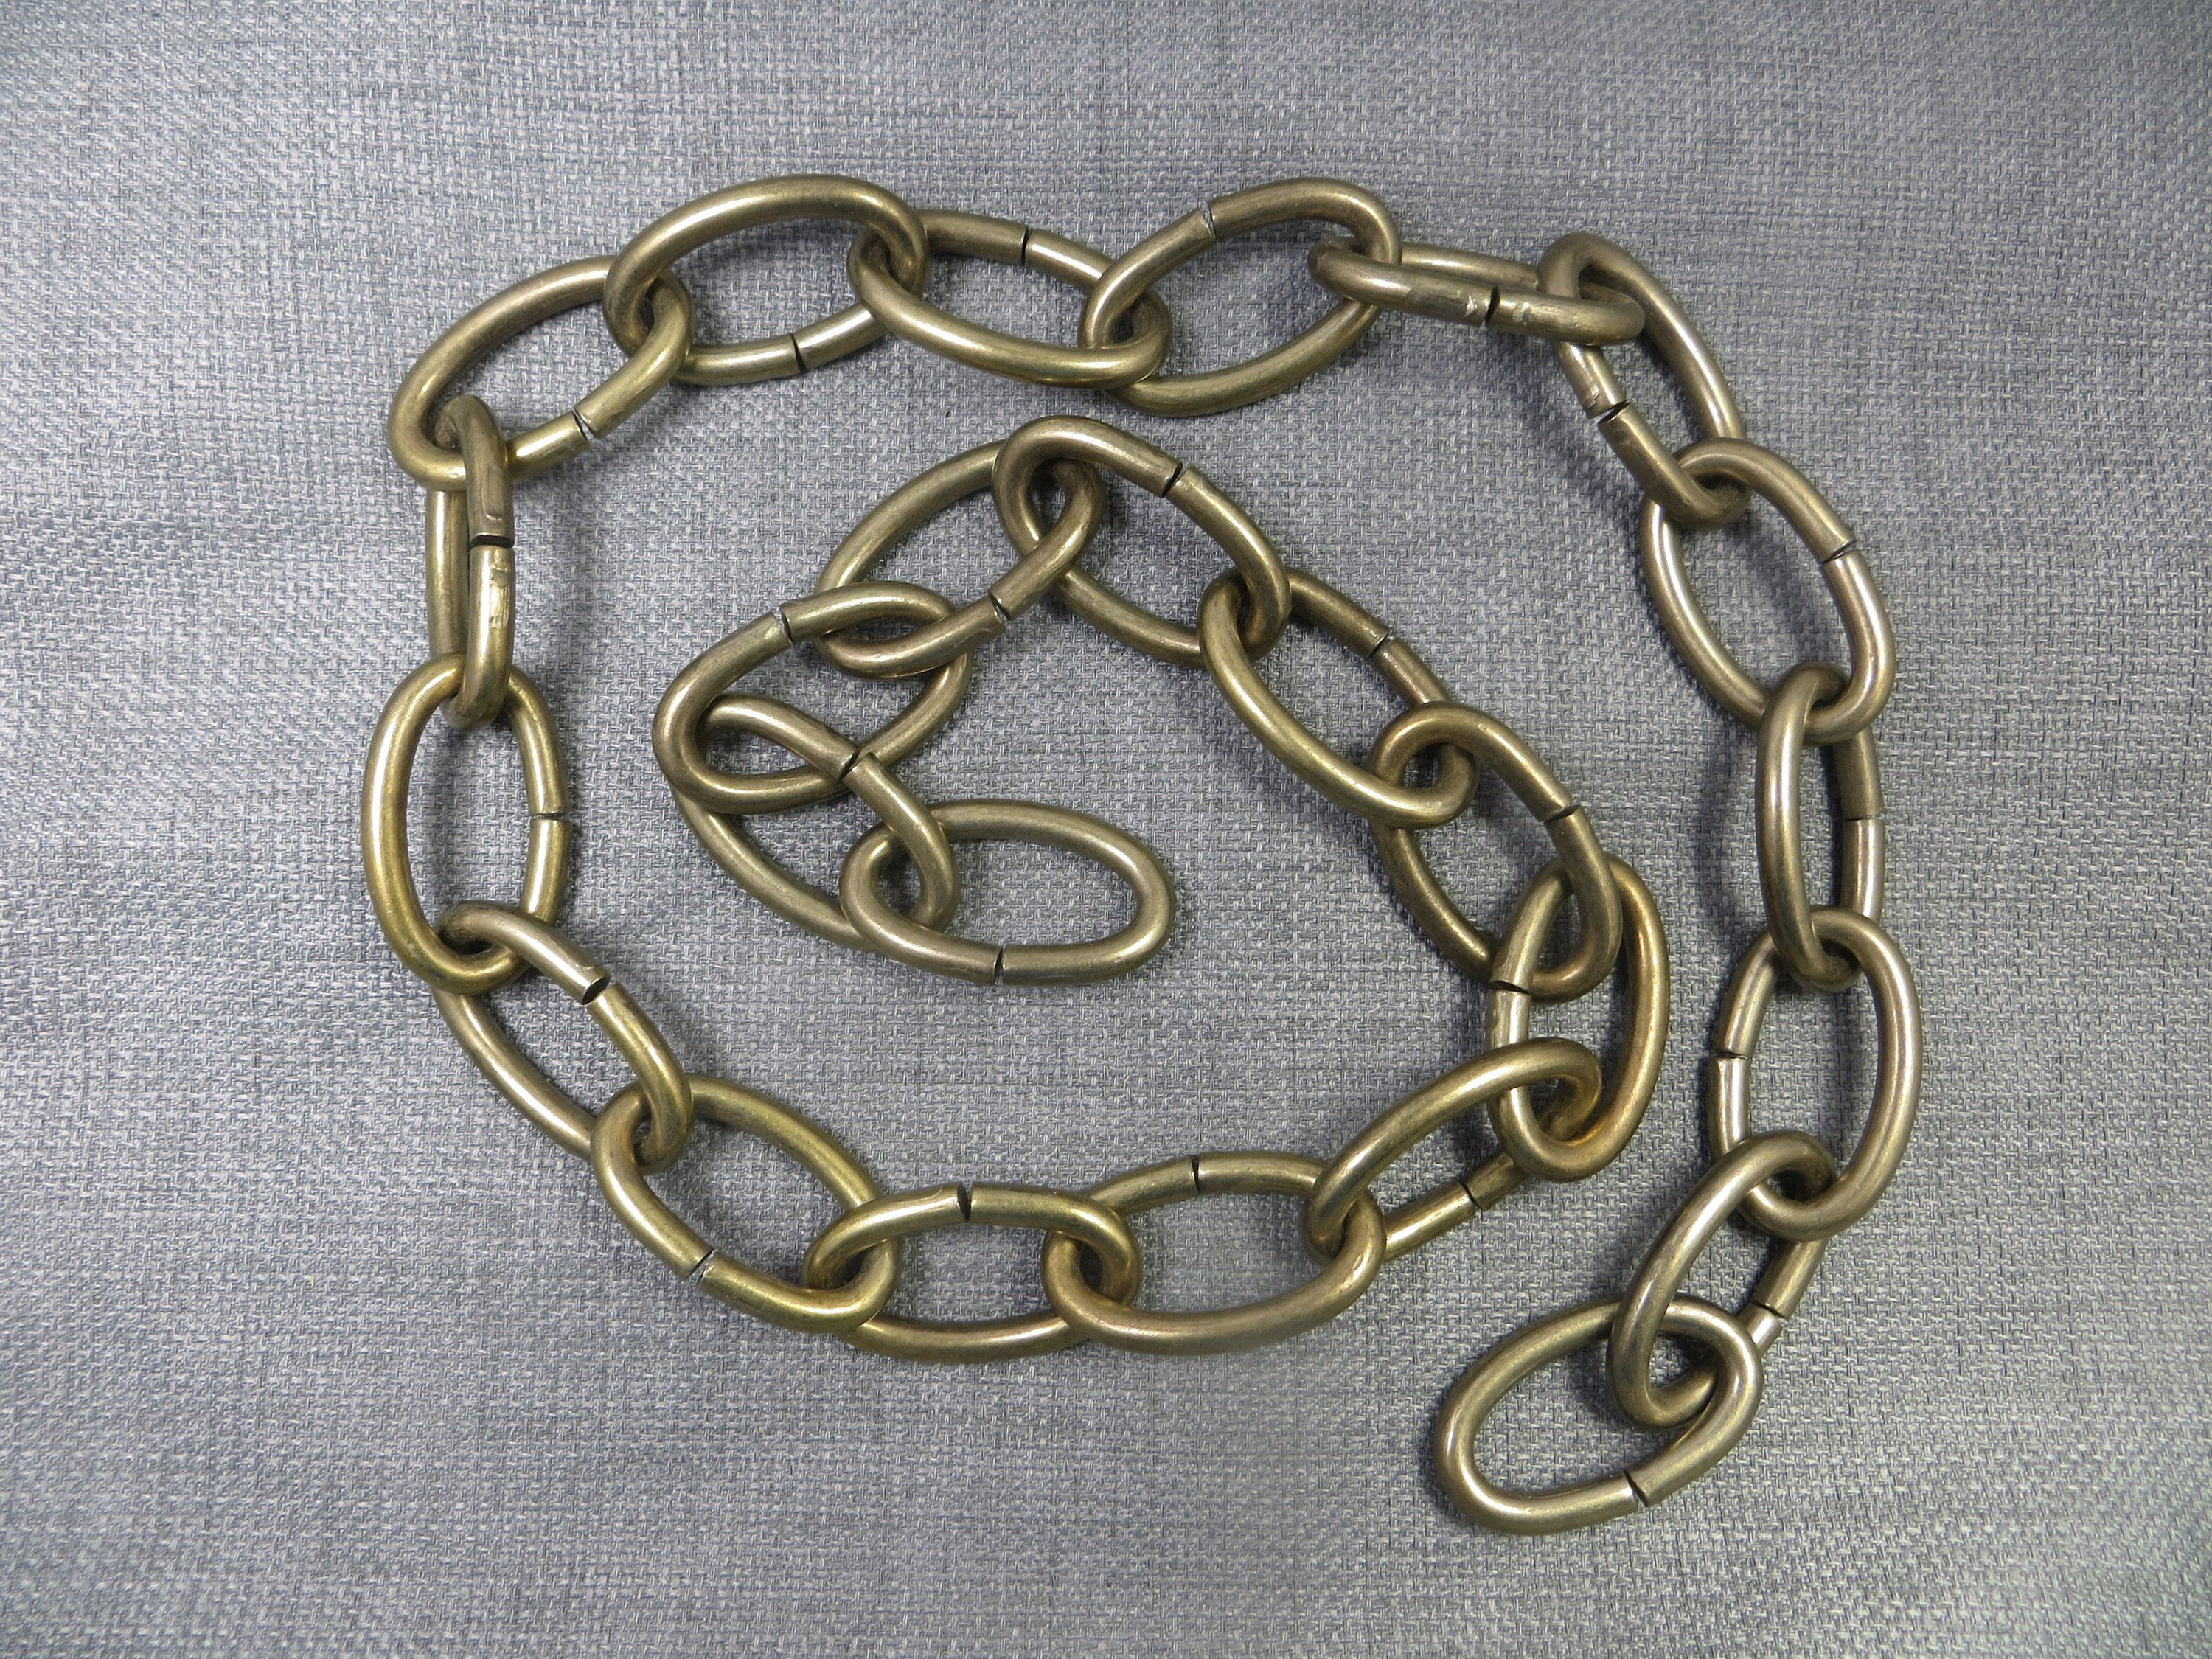 Antiqued Brass Chain Solid Oval Metal Links 3 Foot Long Length Hanging Lamp Chain Mis 1a Stones For Jewelry Making Brass Chain Loose Stones